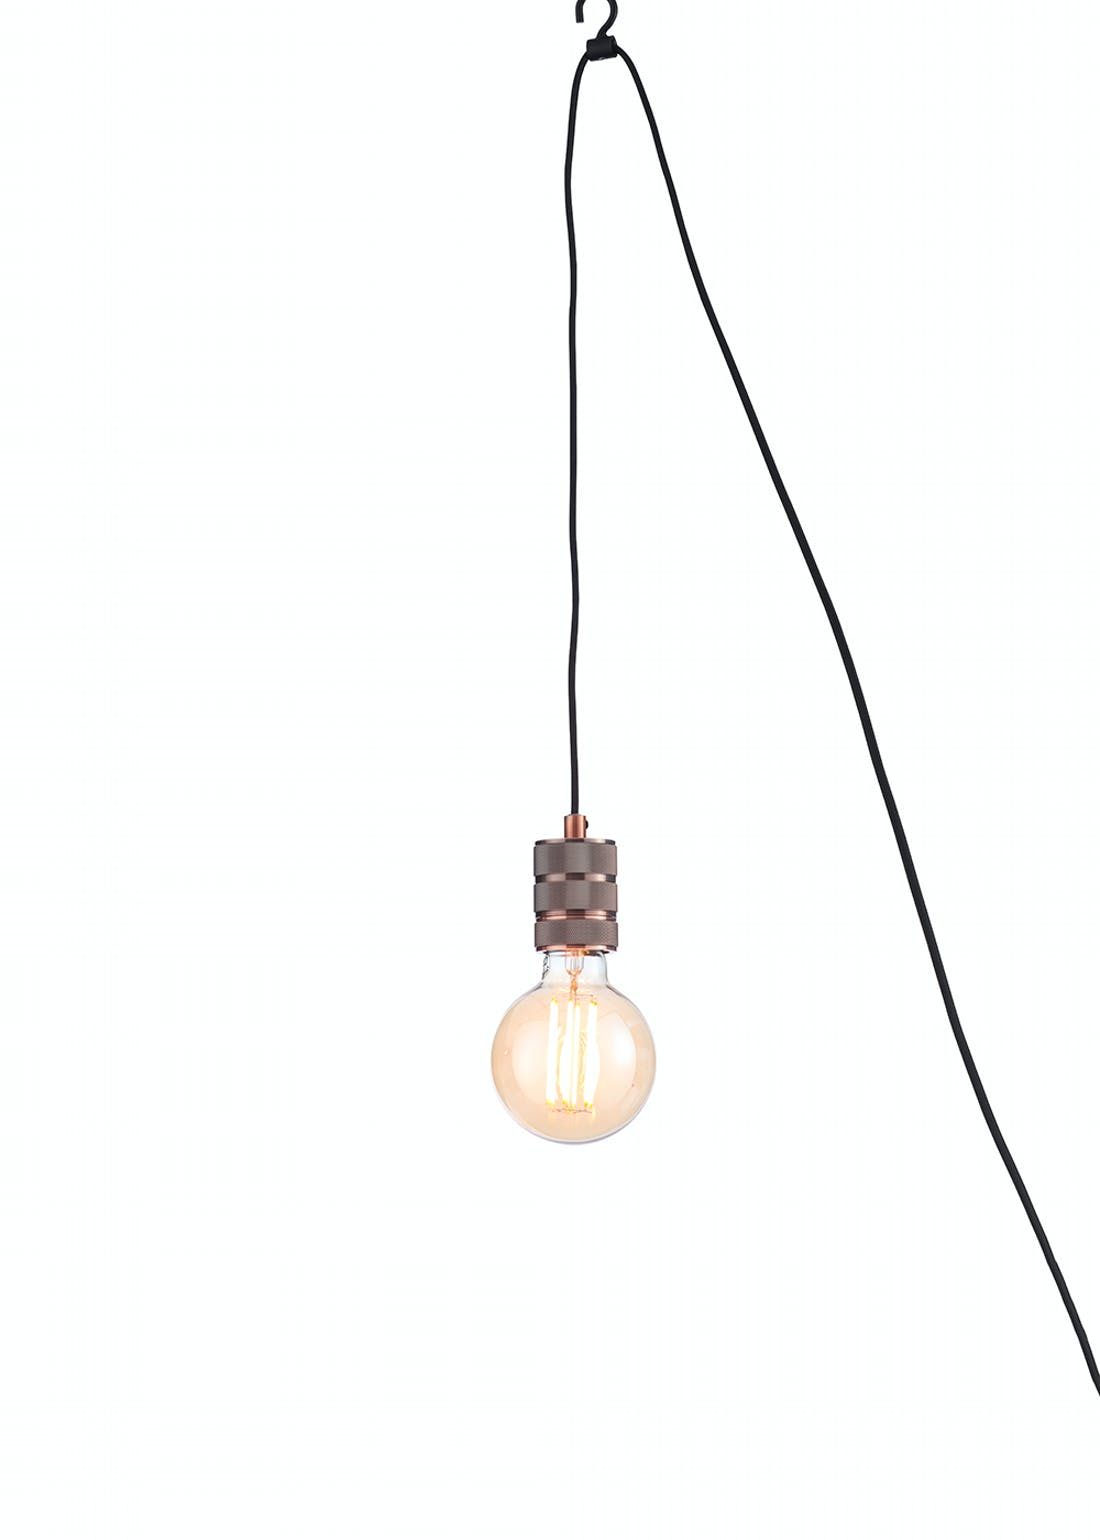 Hanging Pendant Lamp Holder (H48-100cm x W6cm)